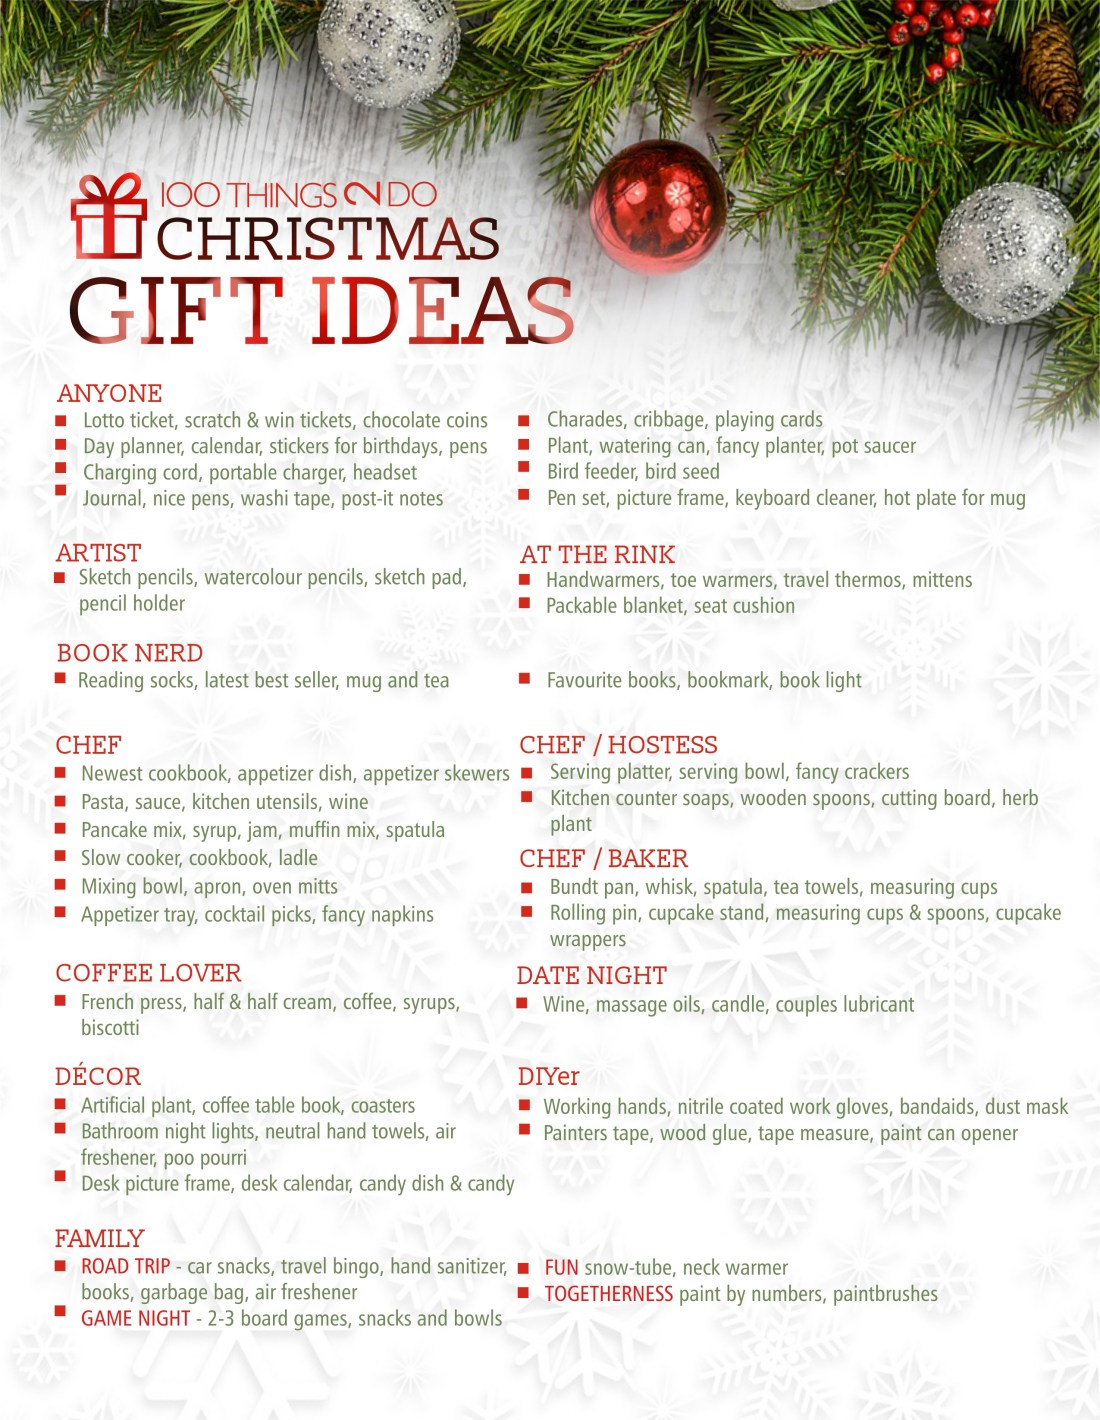 100 Christmas gift ideas, Christmas gift ideas, 100 gift ideas